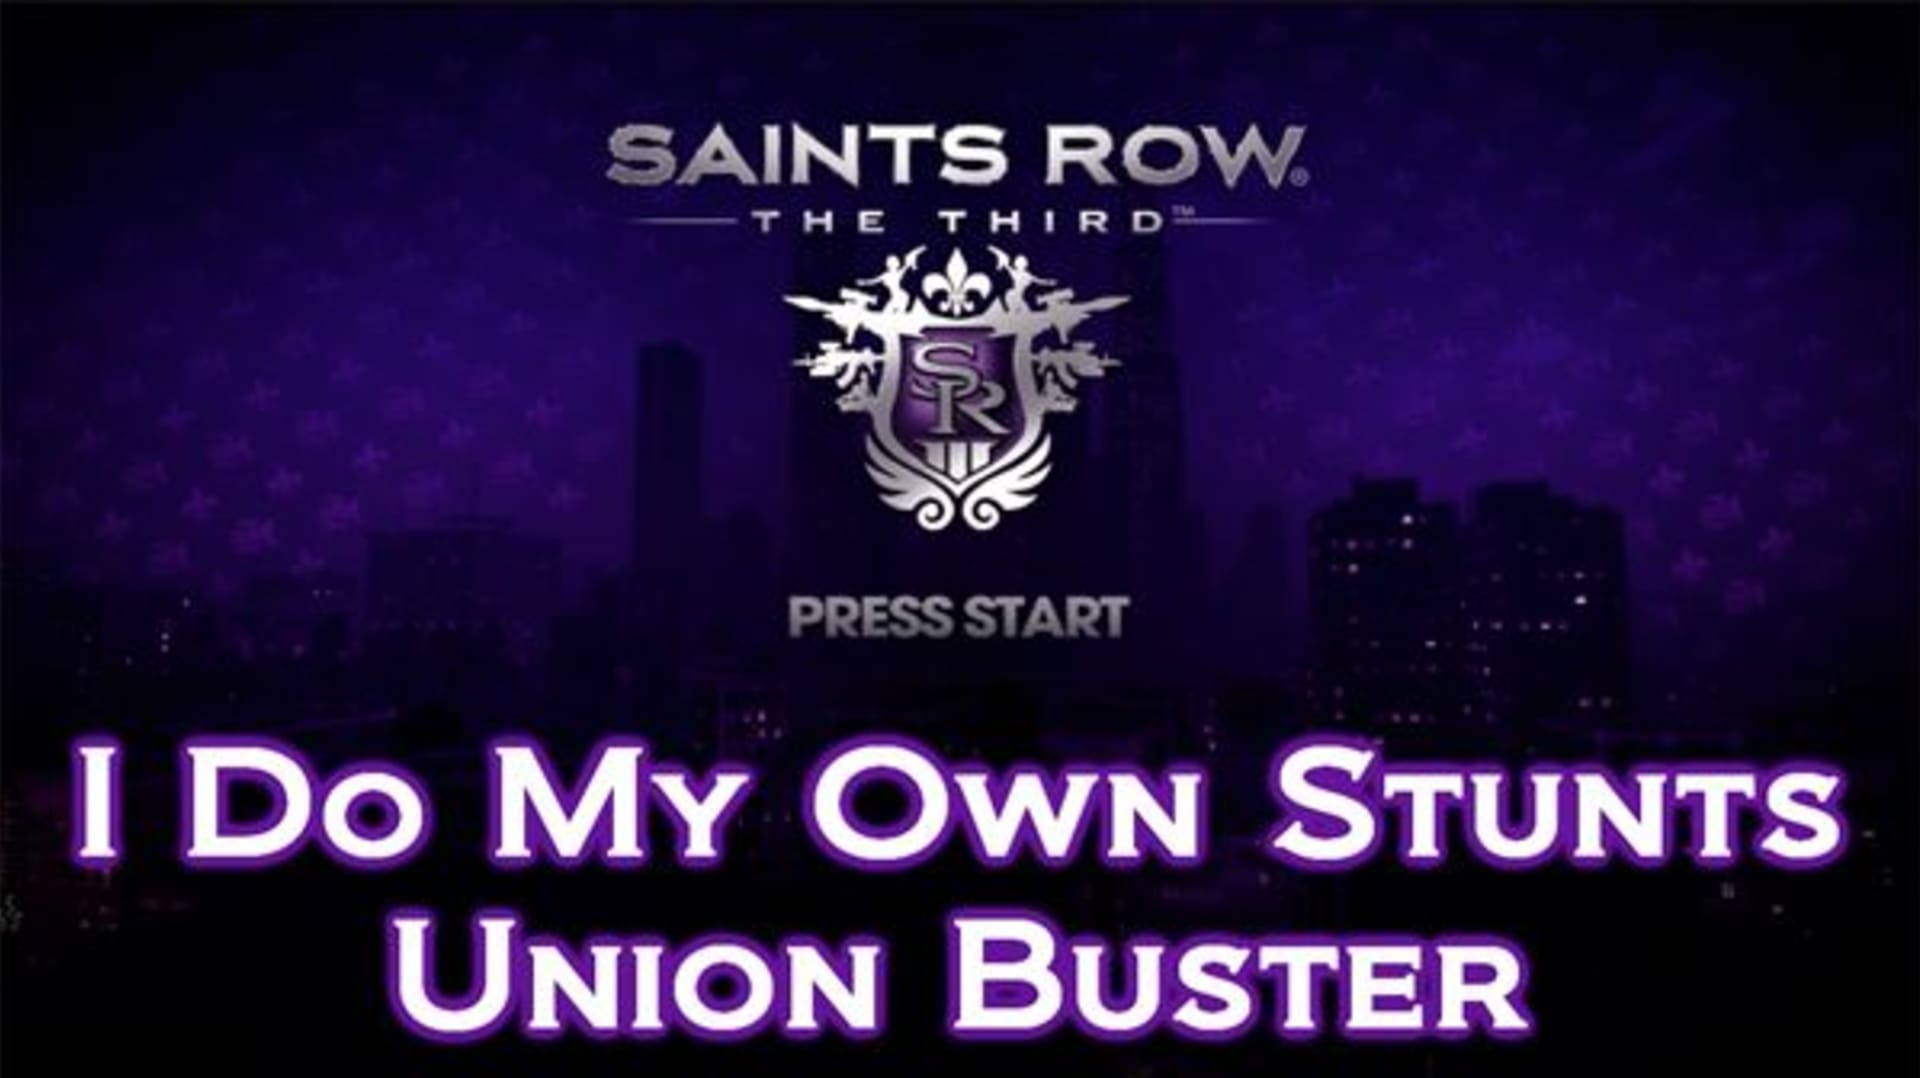 saints row 1 xbox 360 achievements